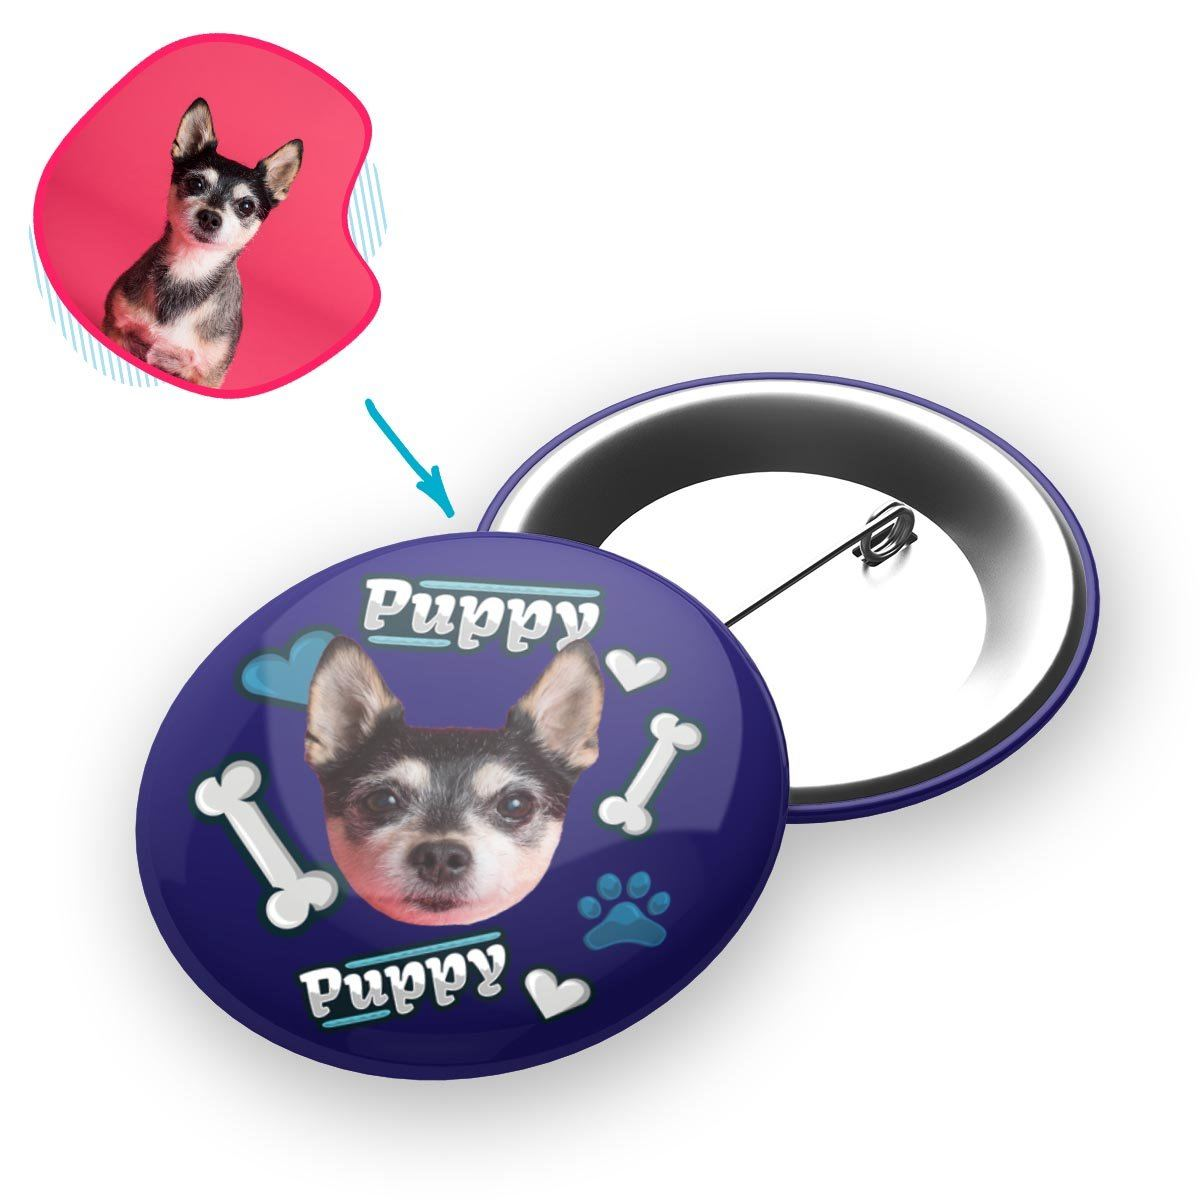 navy Puppy pin personalized with photo of face printed on it